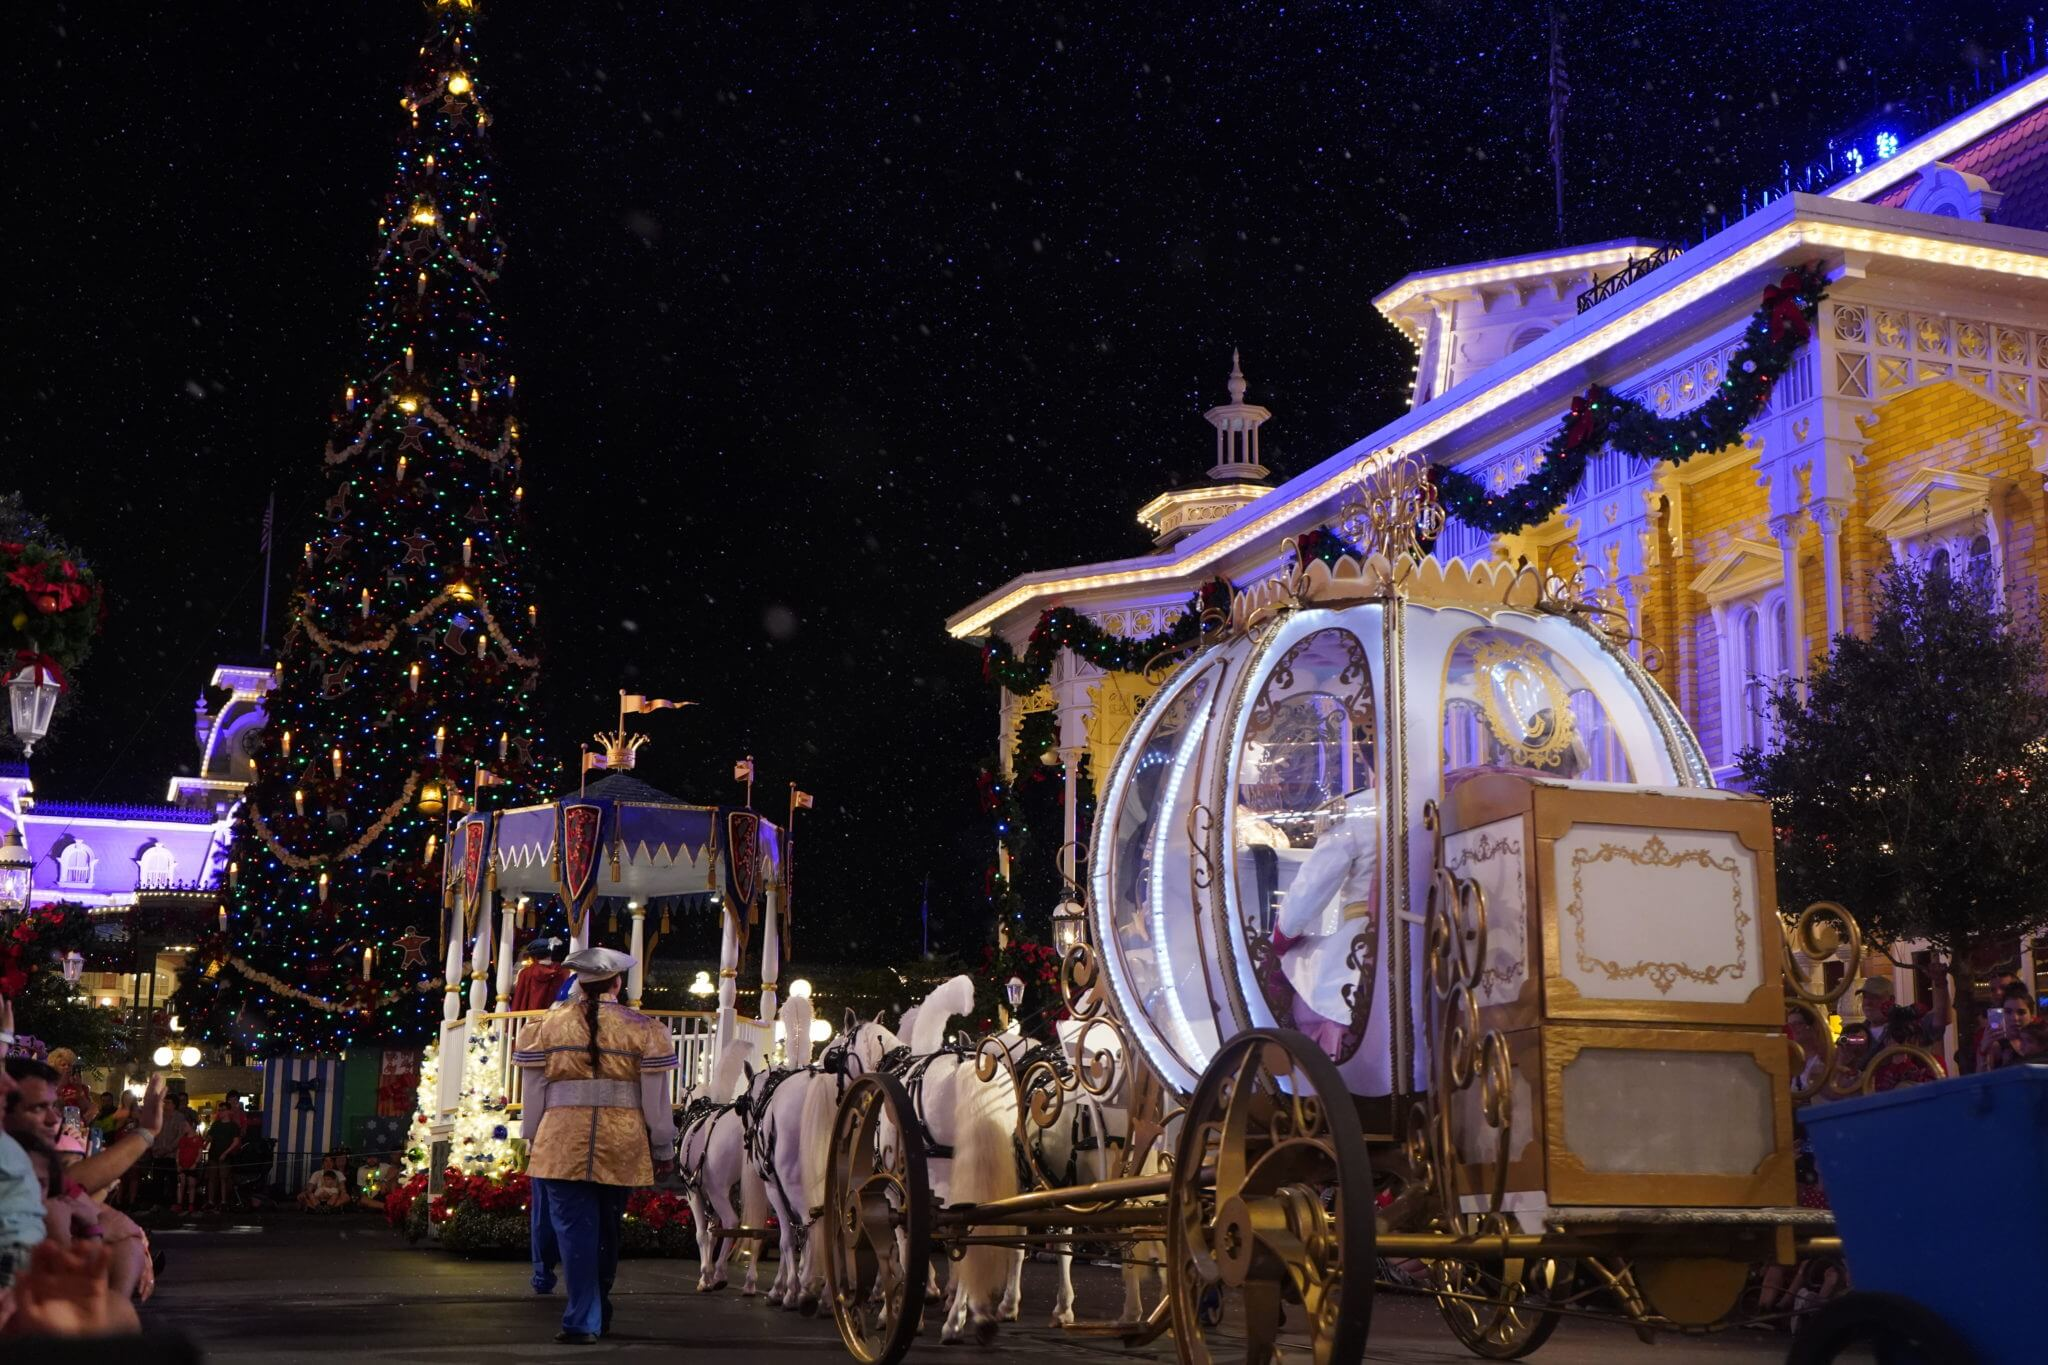 Cinderella Carriage and Christmas Tree in Once Upon a Christmastime Parade on Main Street USA in Disney World